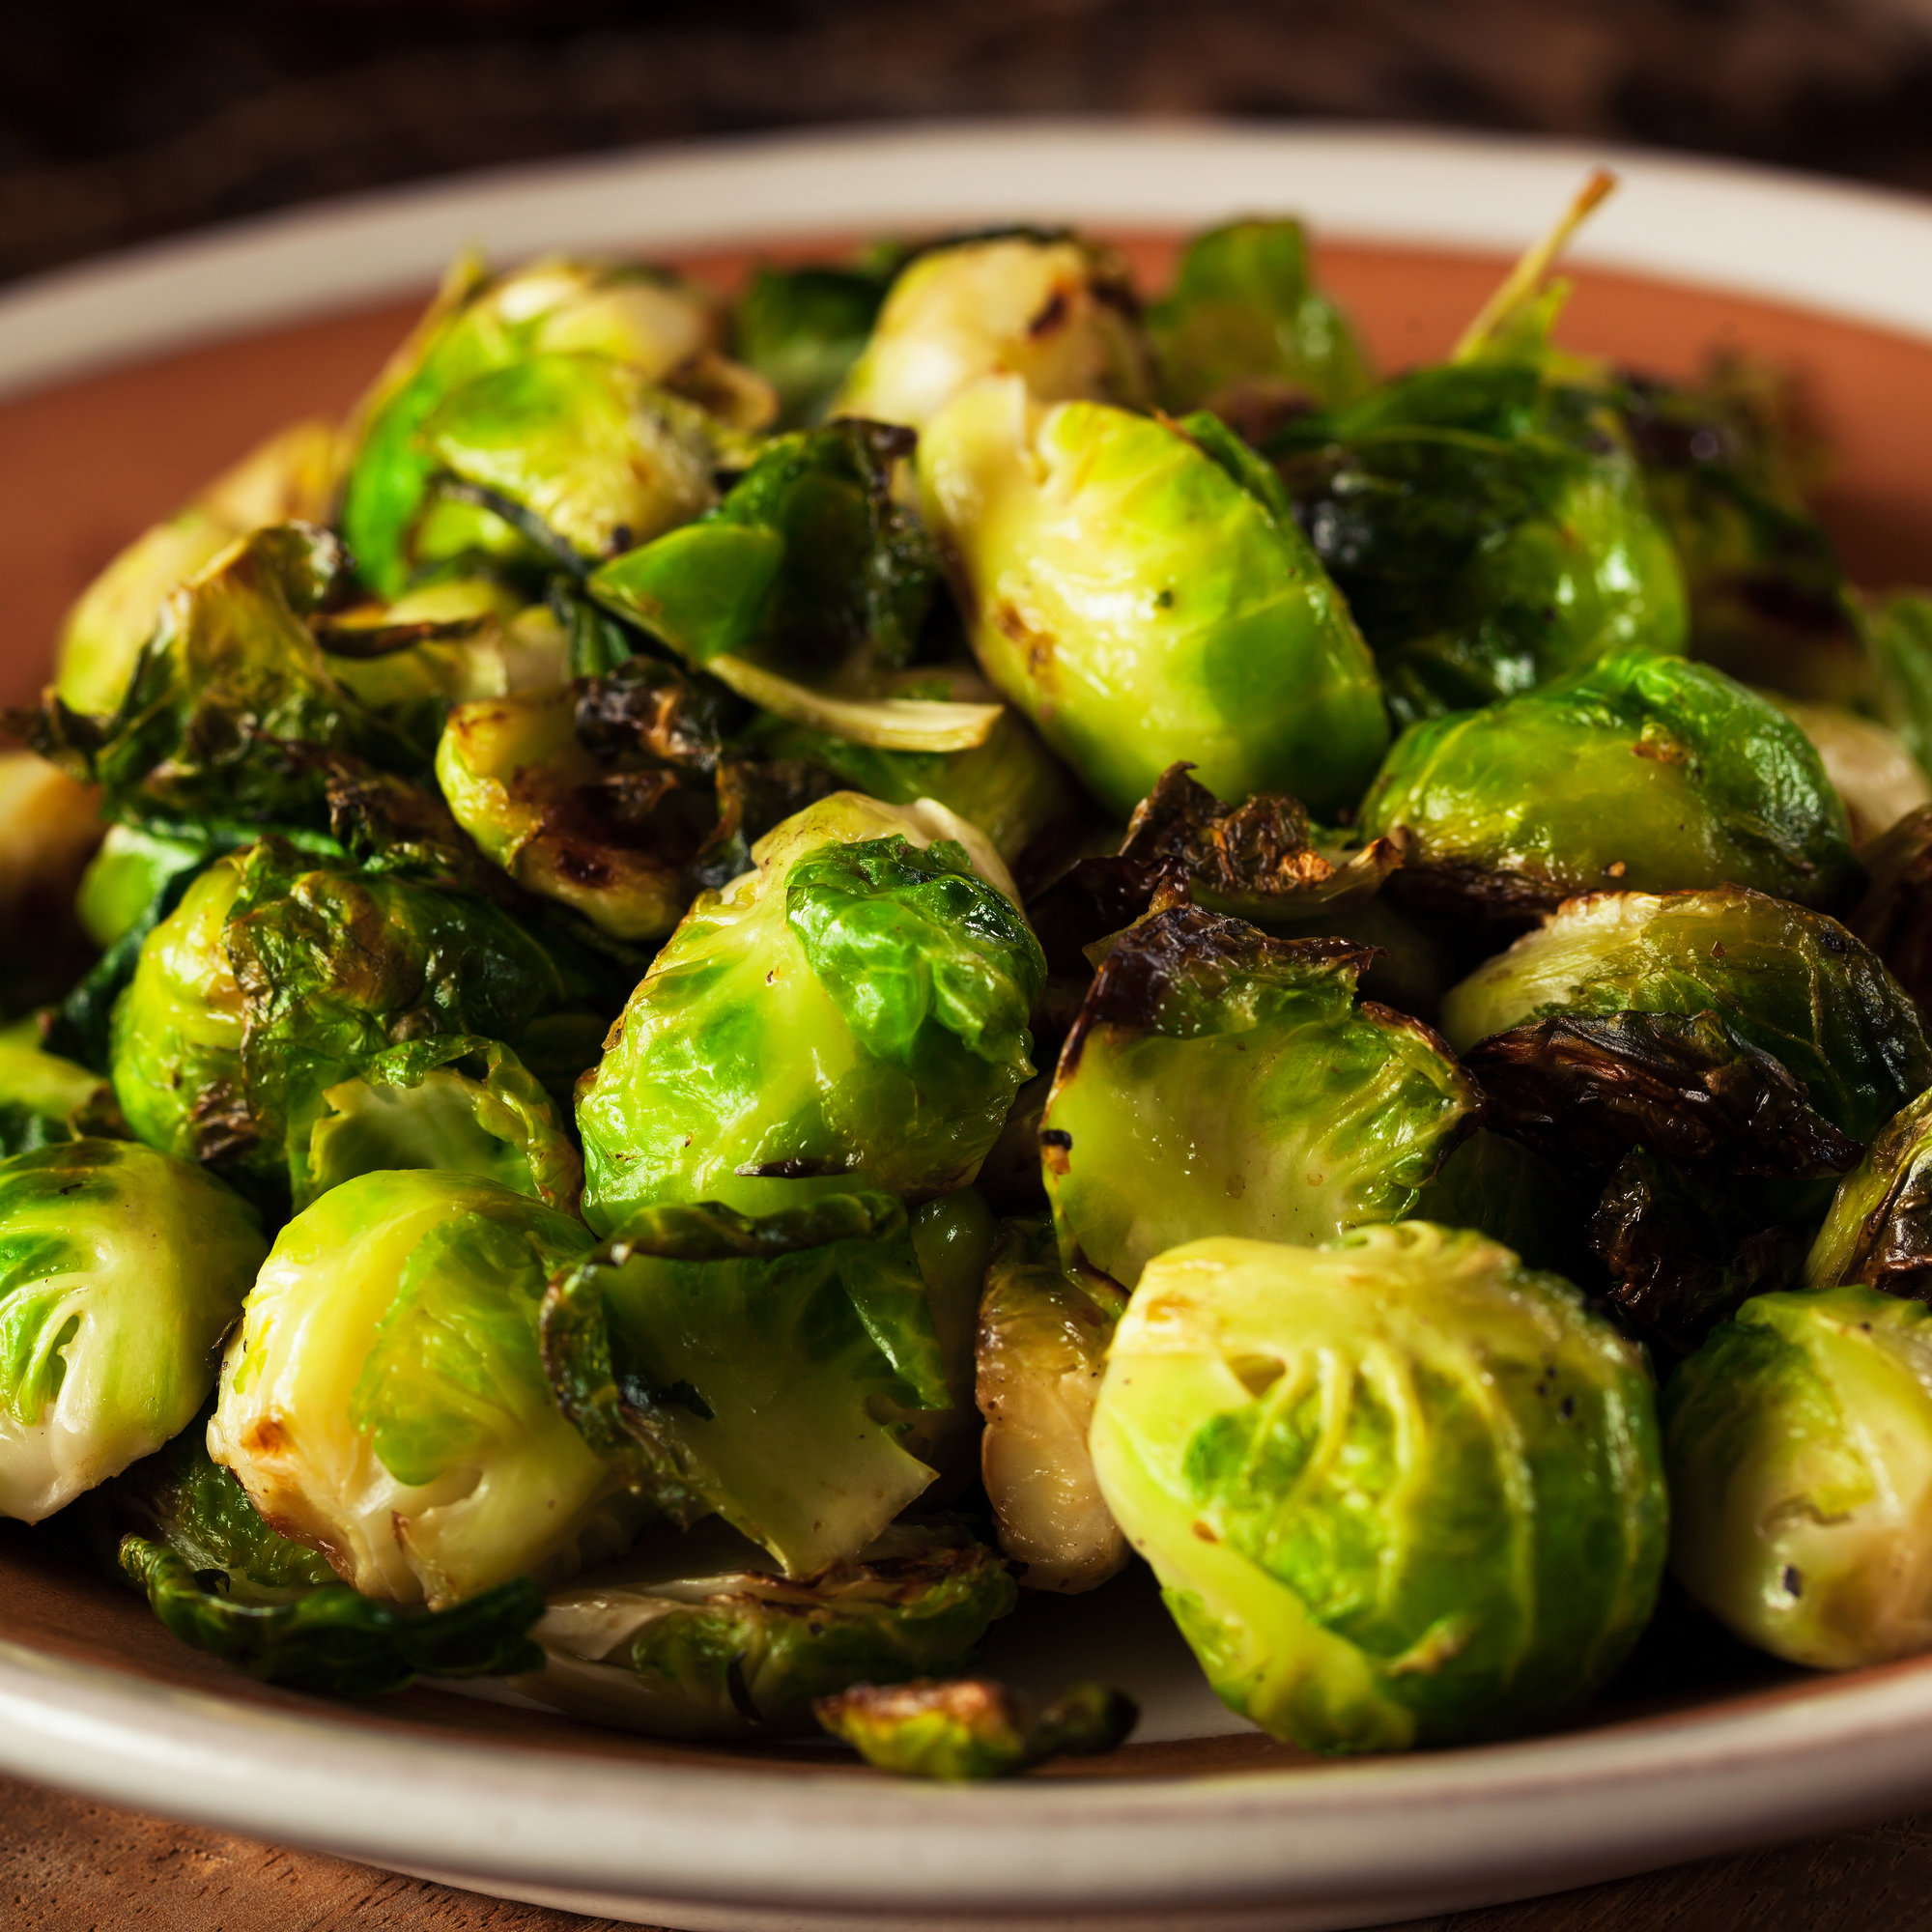 Learn How to Make Caramelized Brussels Sprouts and Kale With Crispy Capers